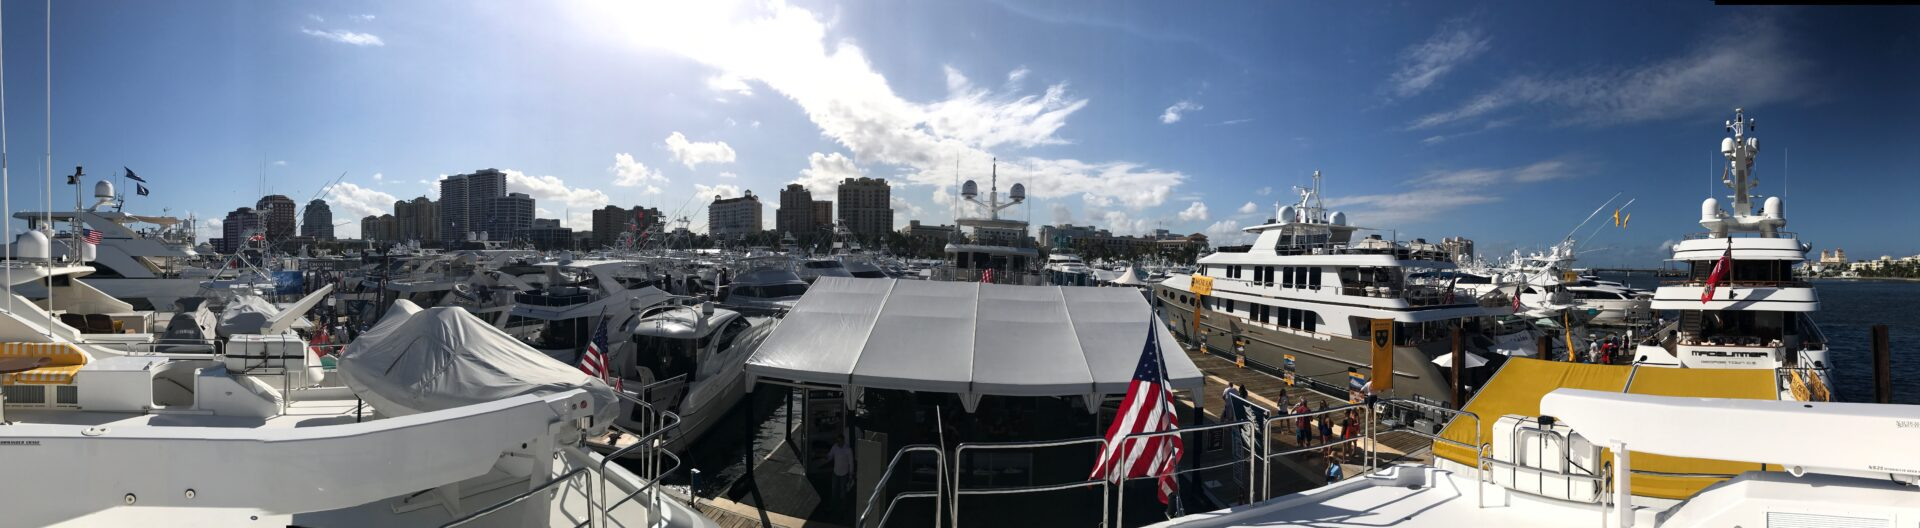 Boat Show Pano